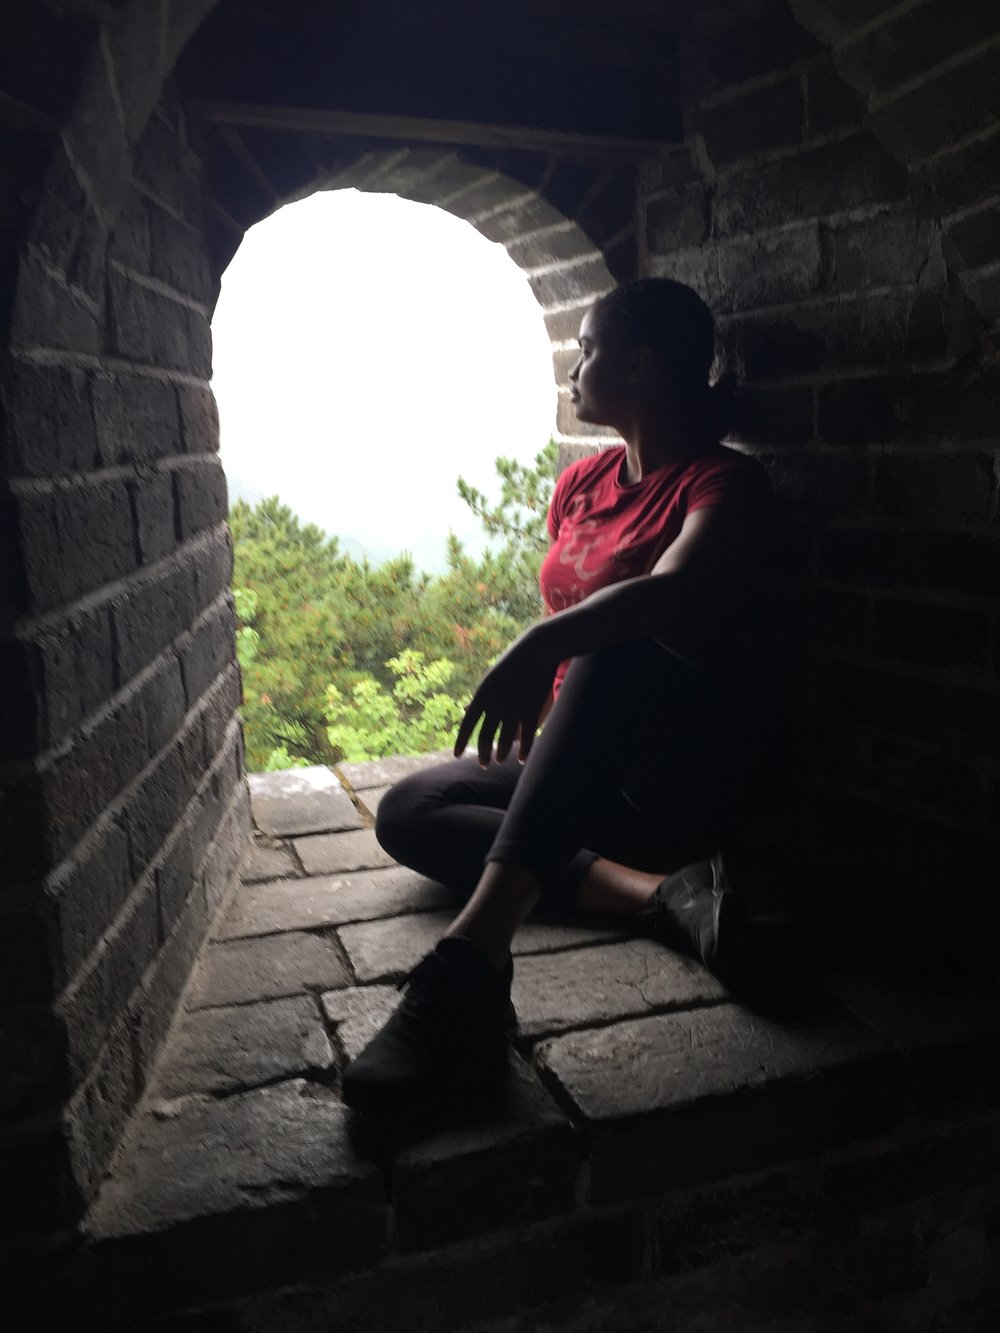 Shavonne - (@vonne_kaye) is an author and the blog curator for All Things Inspiration. She enjoys traveling, fitness, movies and the arts. Pictured here atop the Mutianyu path of the Great Wall of China (May 22, 2017).